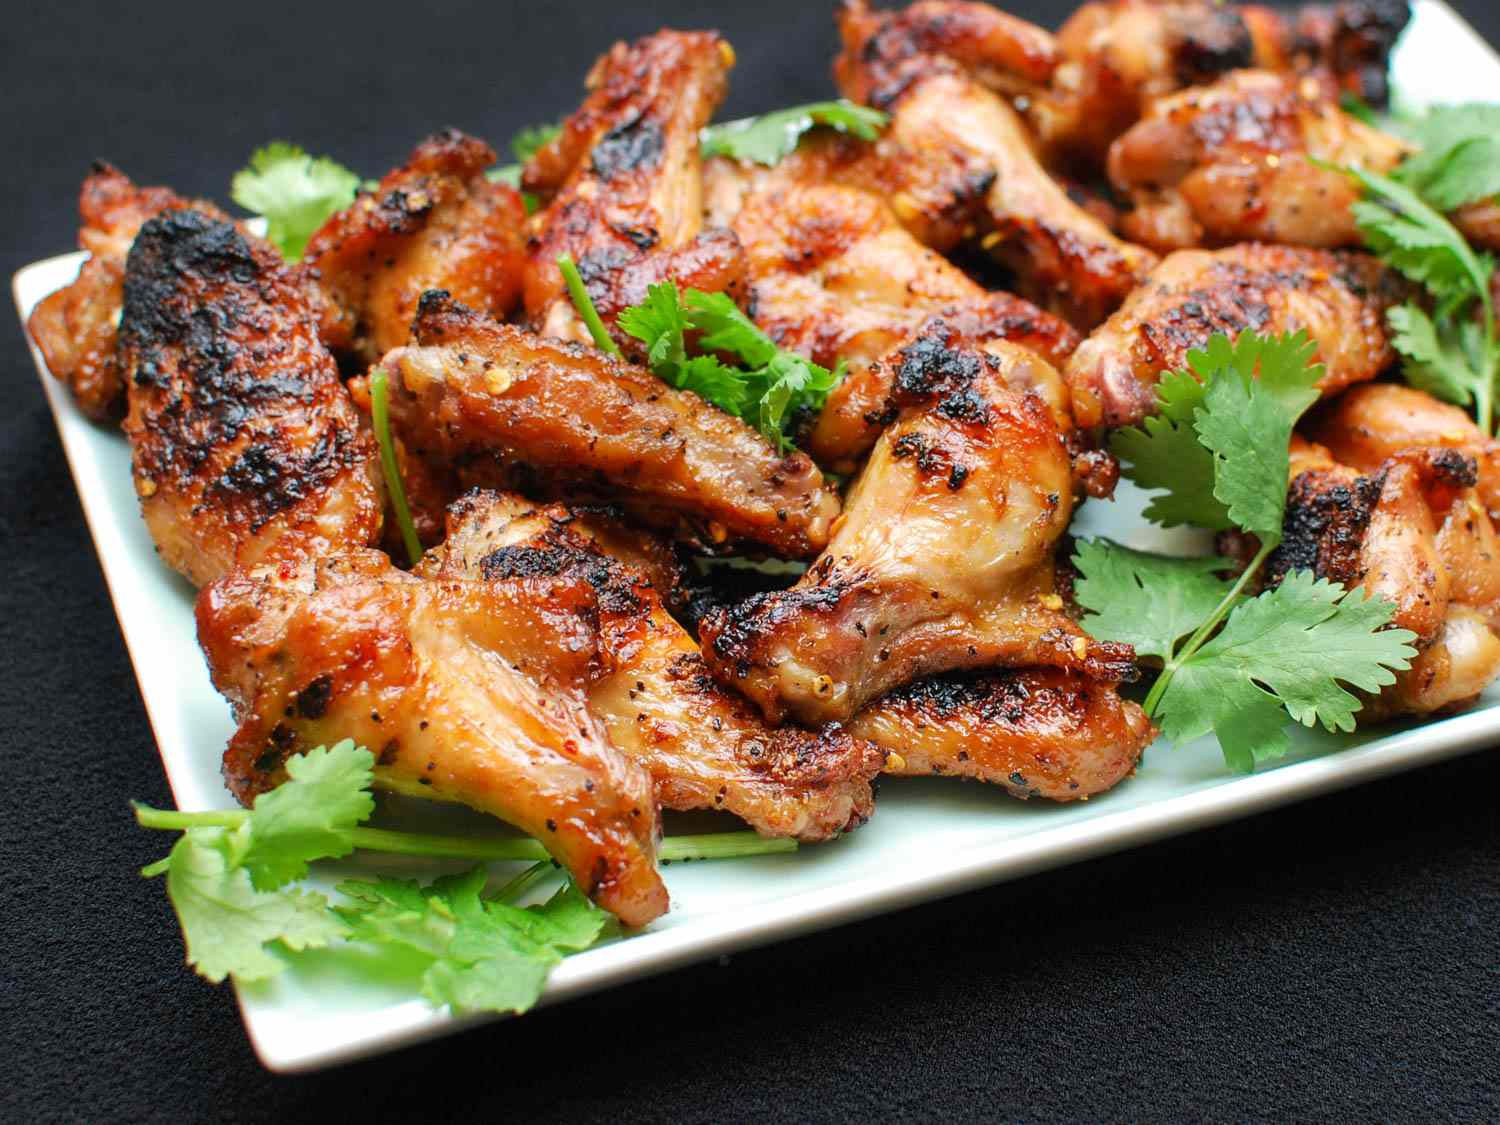 20150515-grilled-spicy-chicken-wings-soy-sauce-fish-sauce-shao-zhong-12.jpg